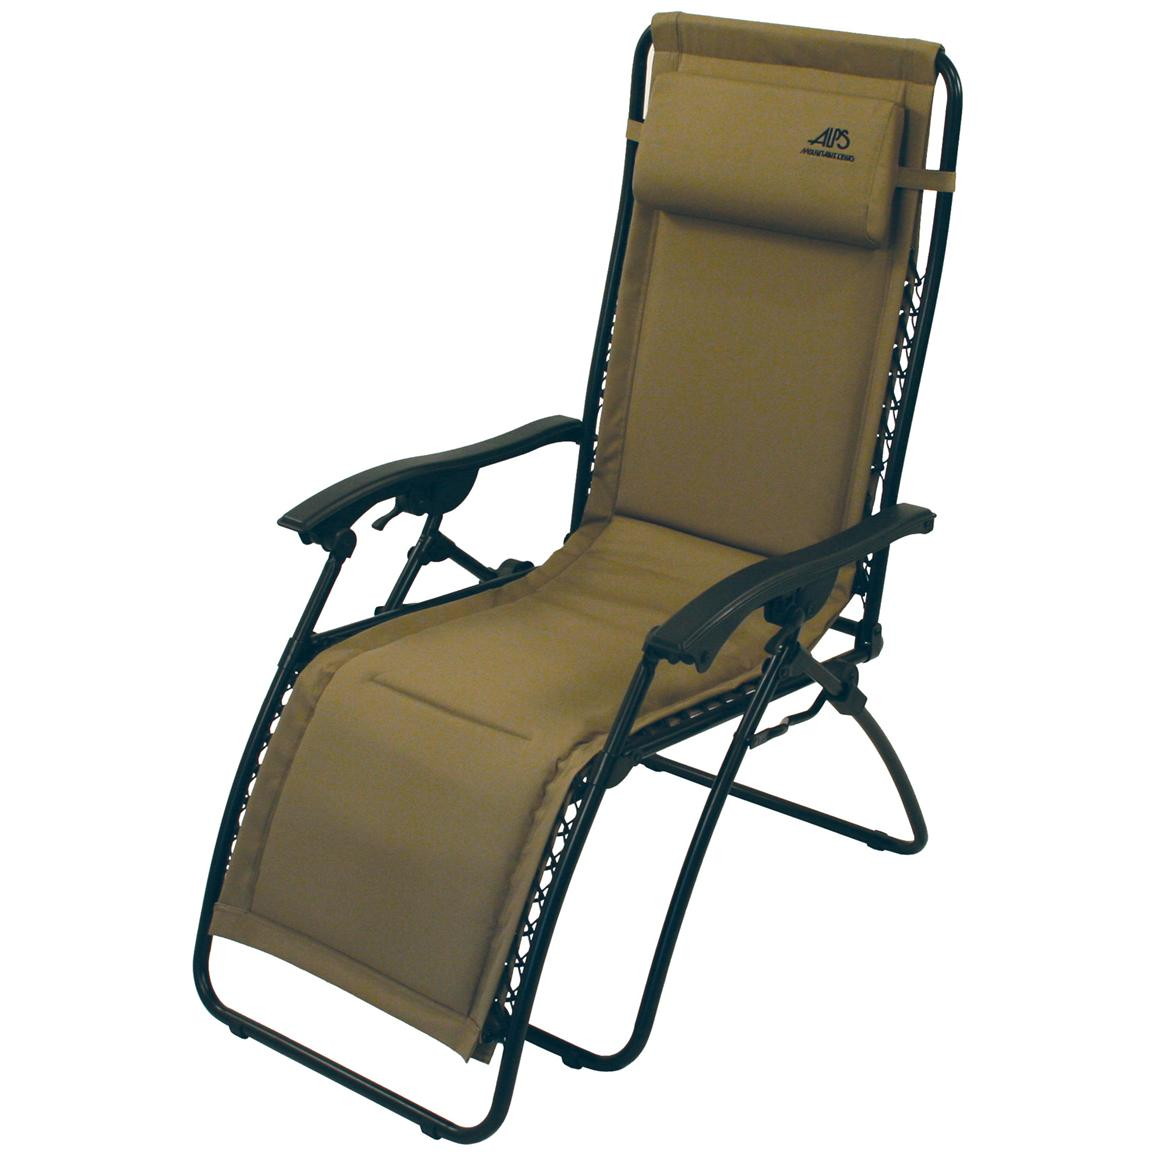 Alps Mountaineering Chair Alps Mountaineering Kickback Chair 177038 Chairs At